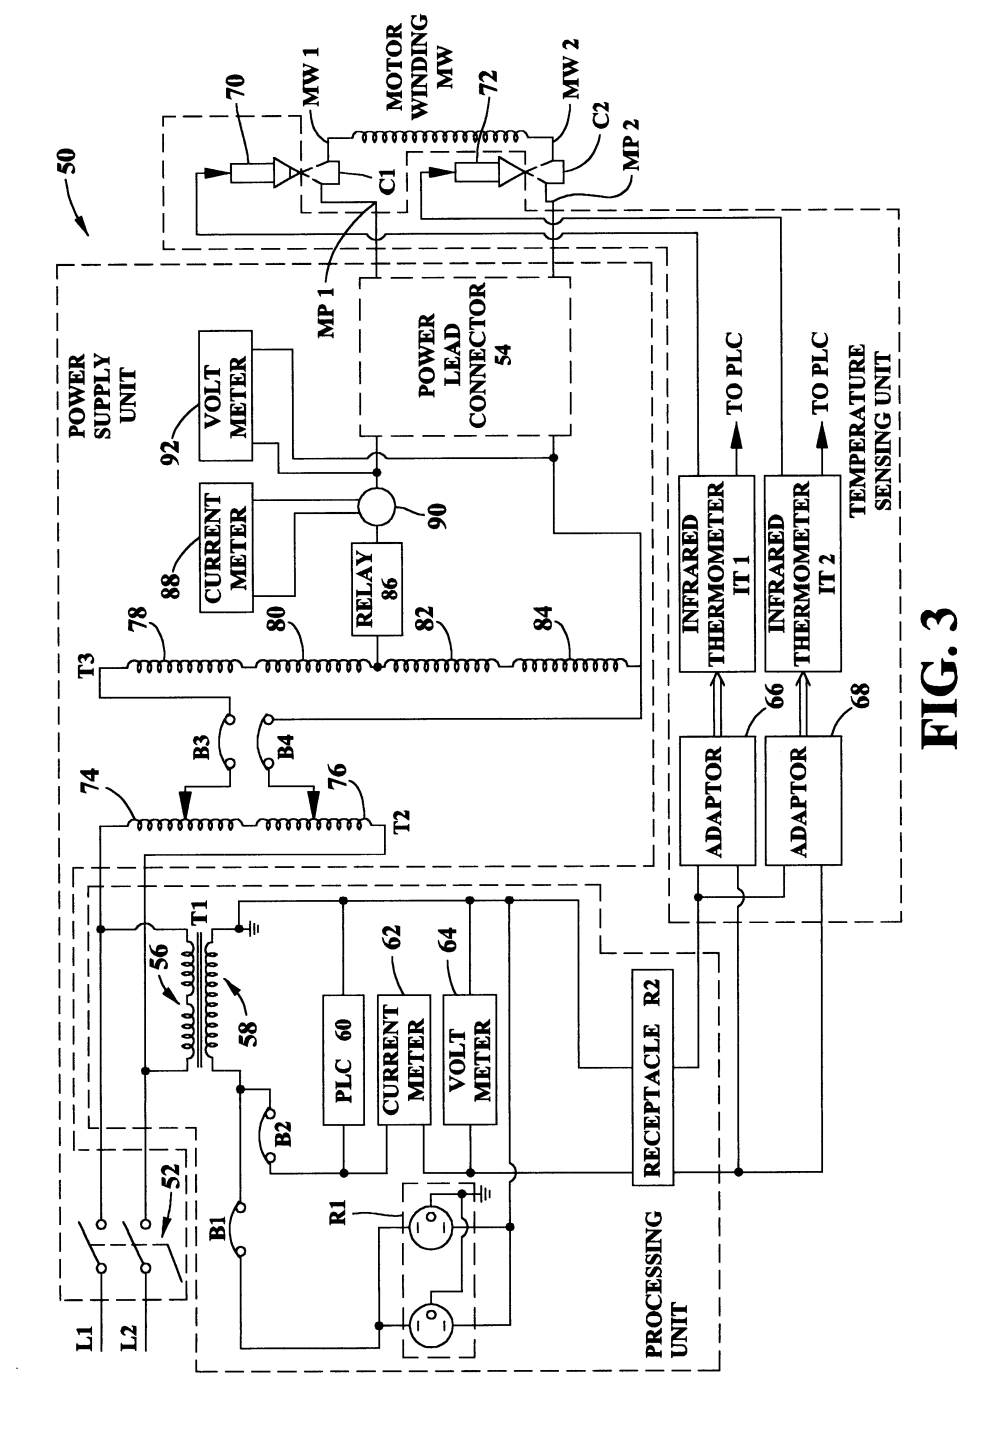 medium resolution of patent us6343259 methods and apparatus for electrical connection